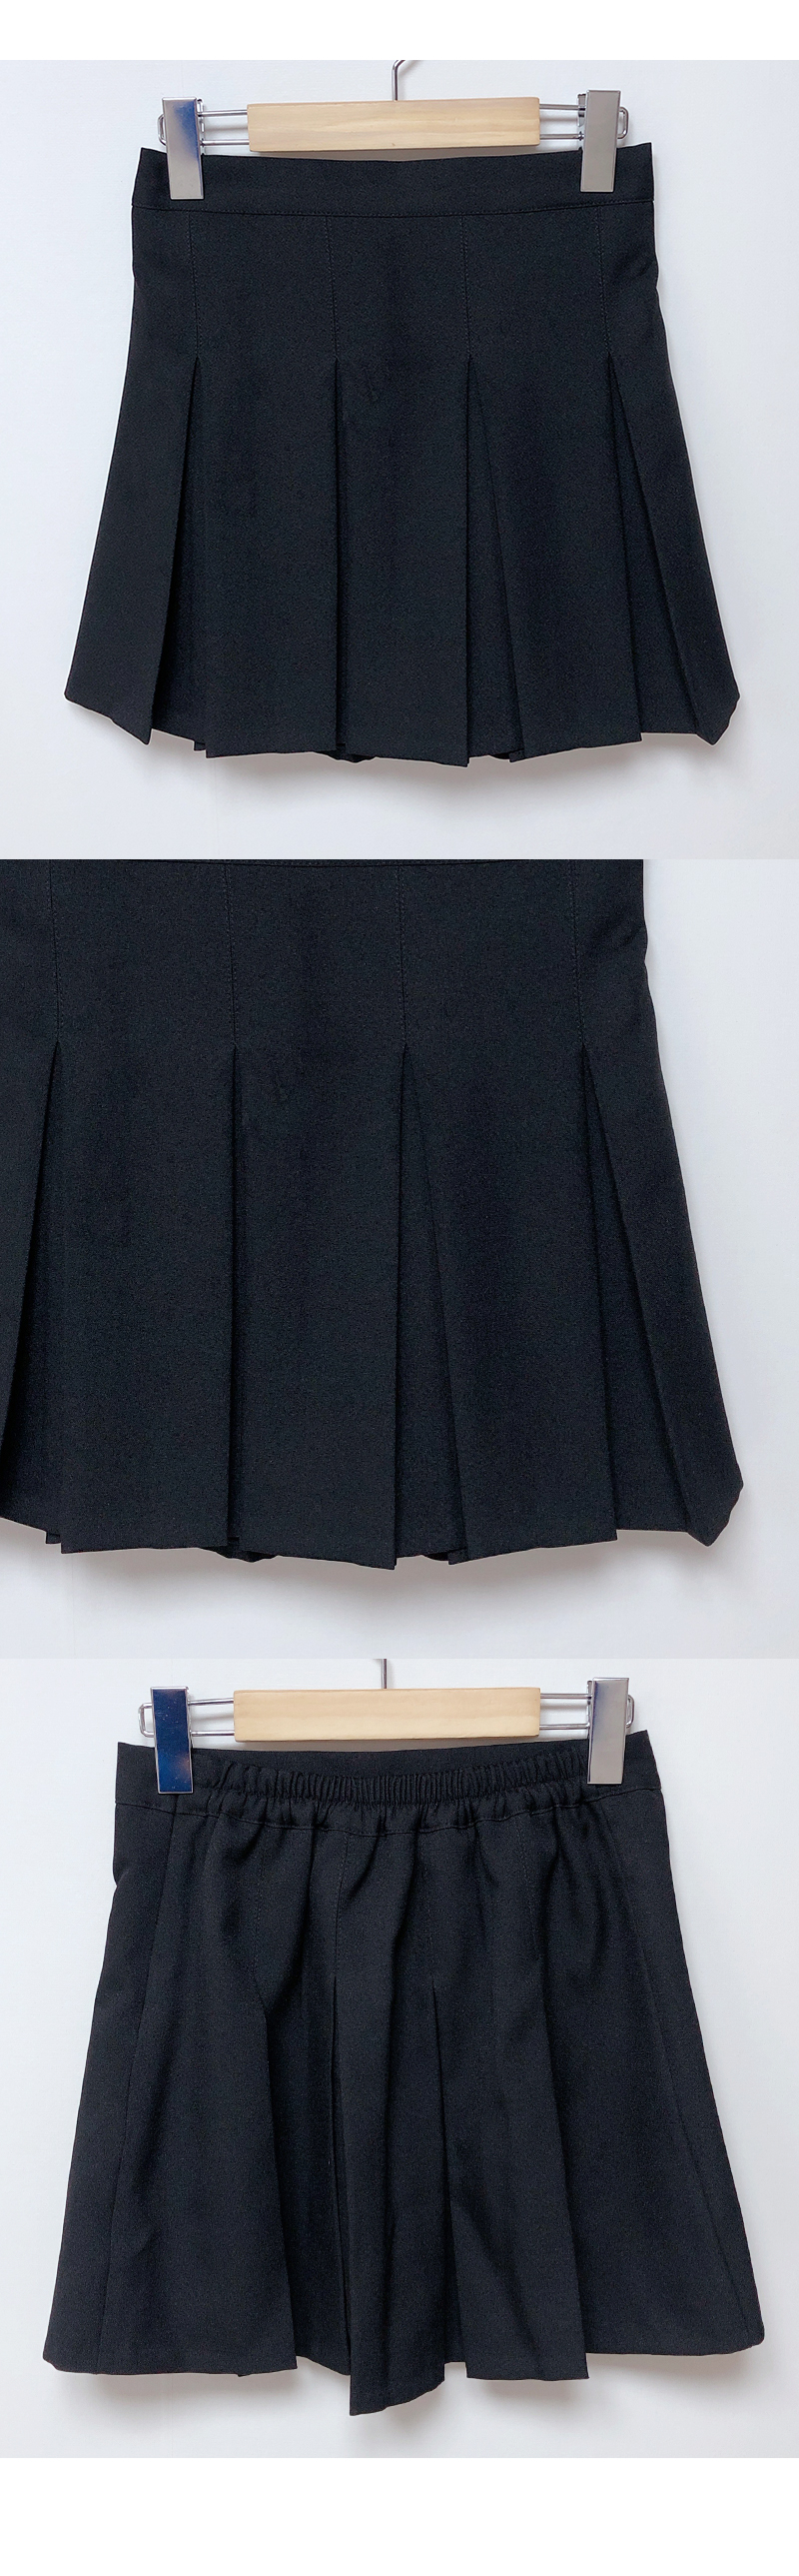 Self-made ♥ Arco pleated skirt